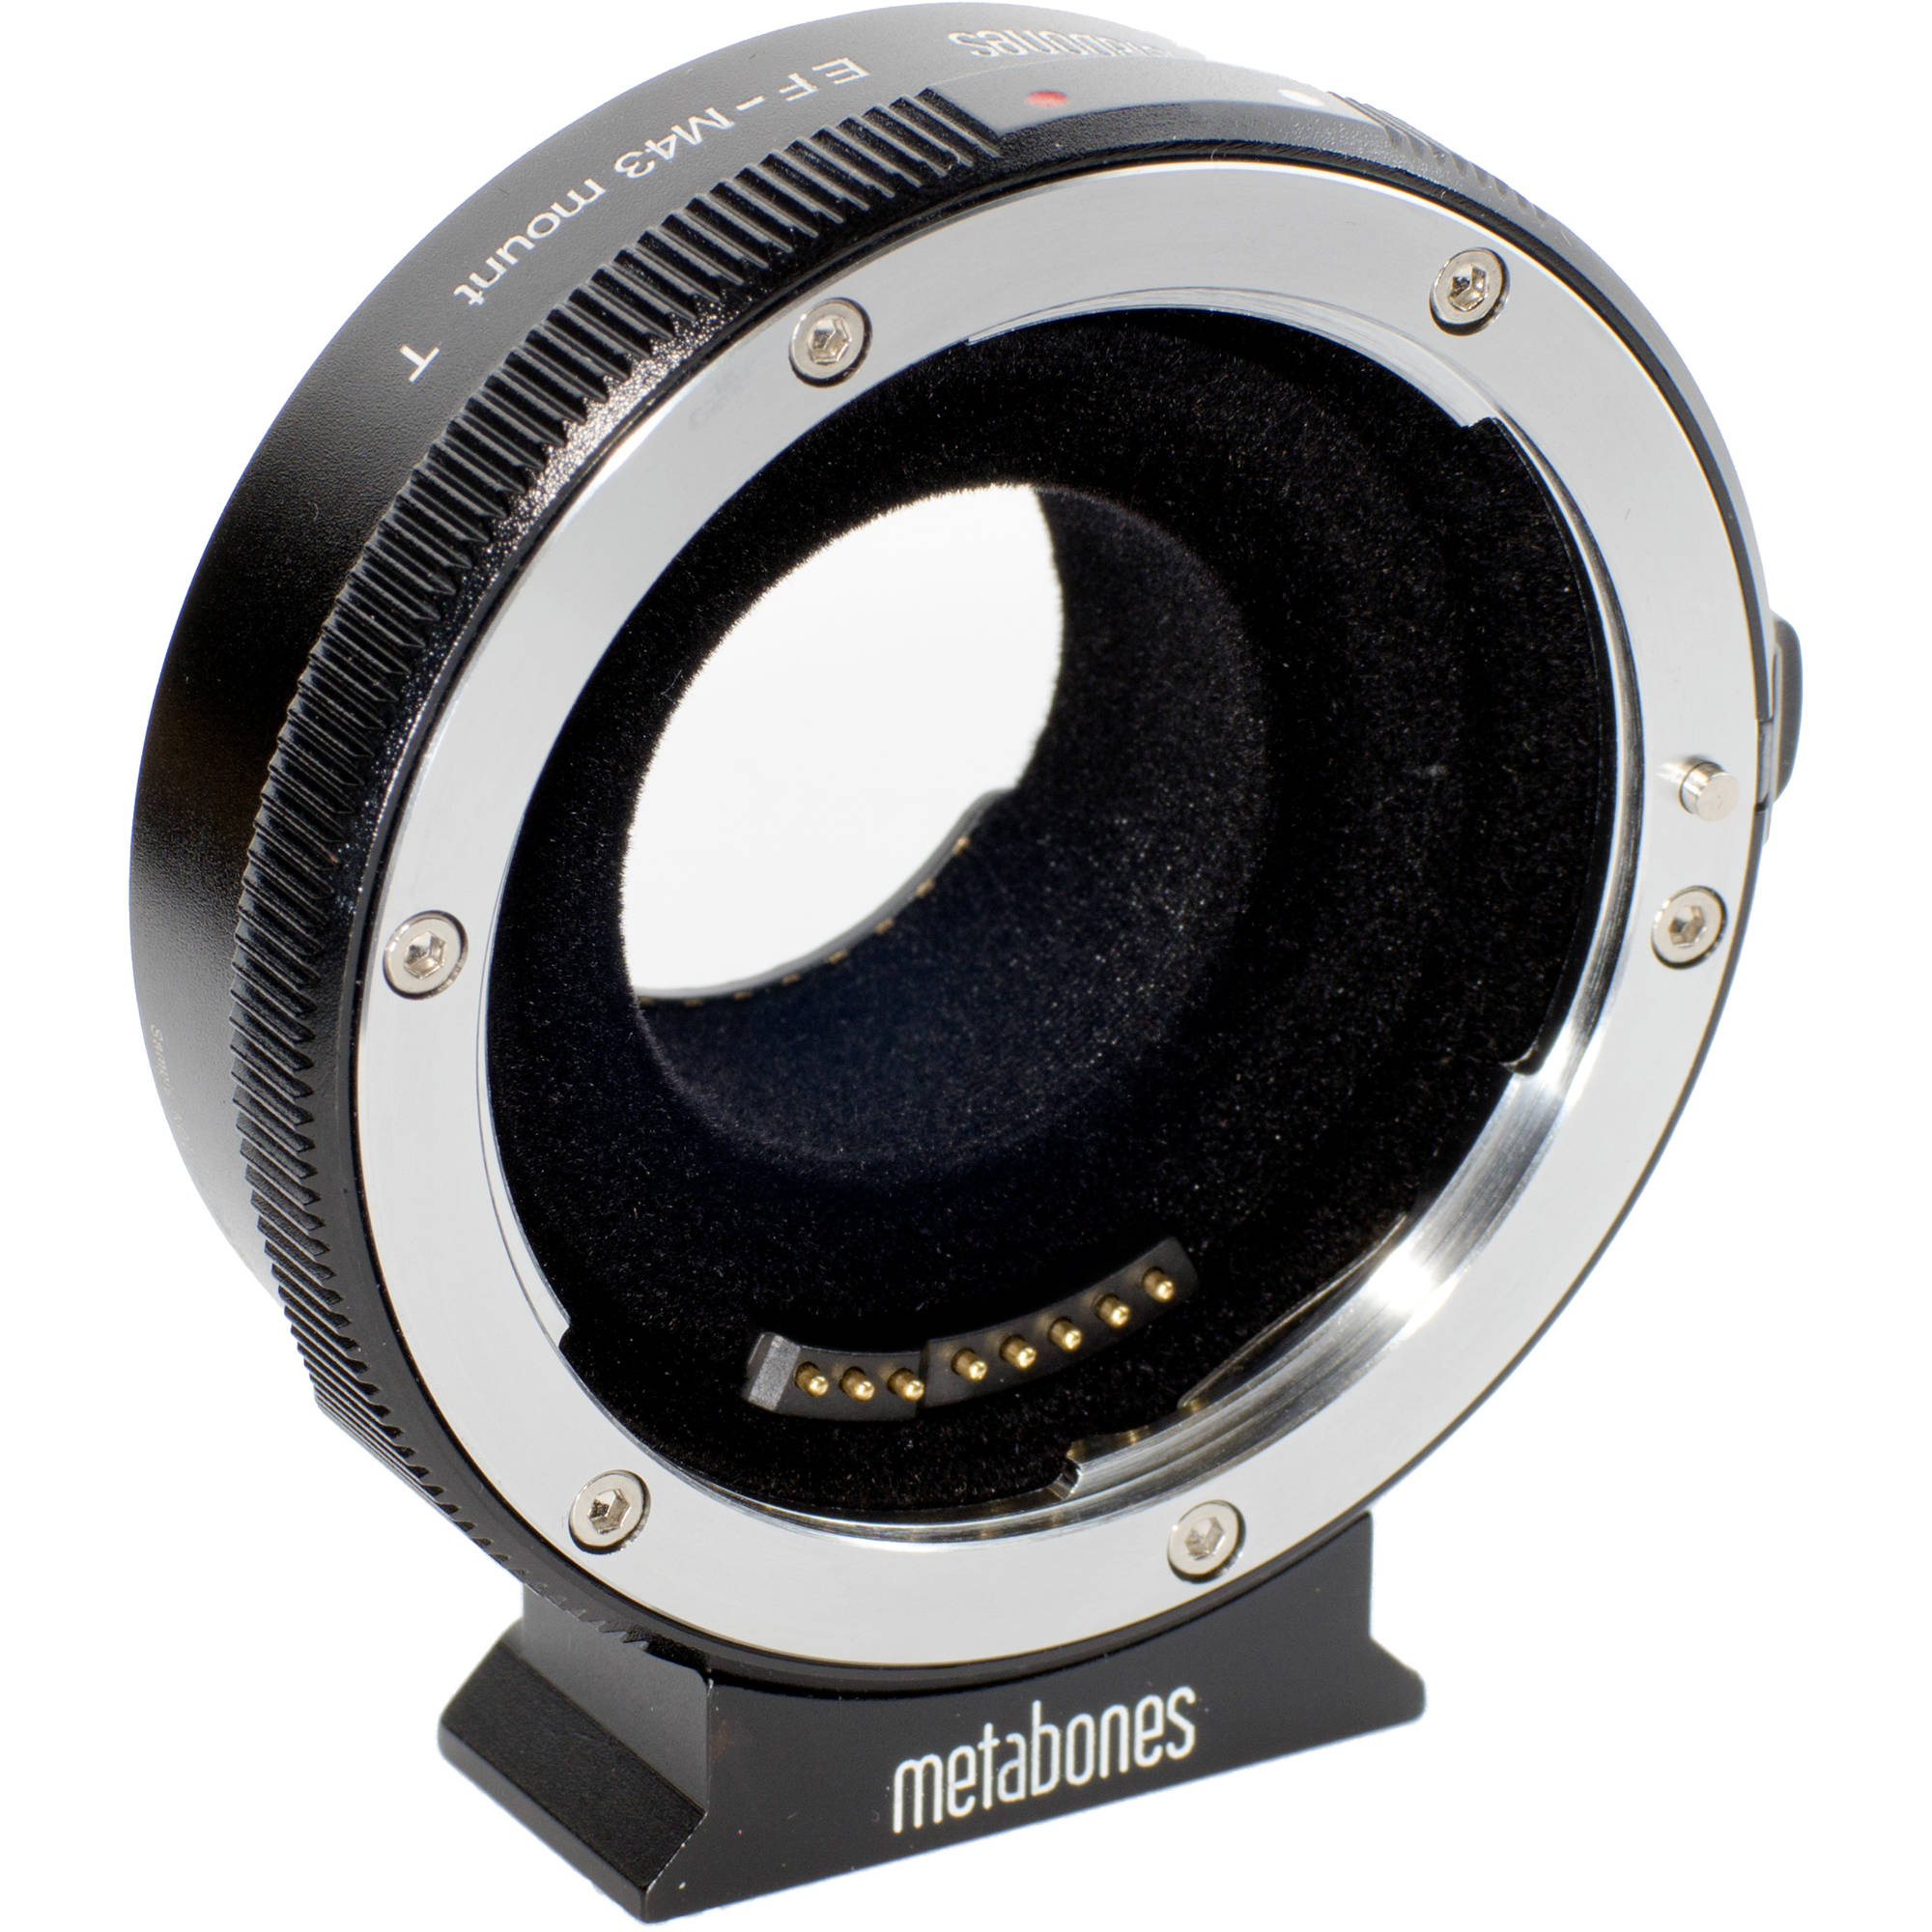 CANON EF-MICRO FOUR THIRDS T SMART ADAPTER METABONES DRIVER FOR MAC